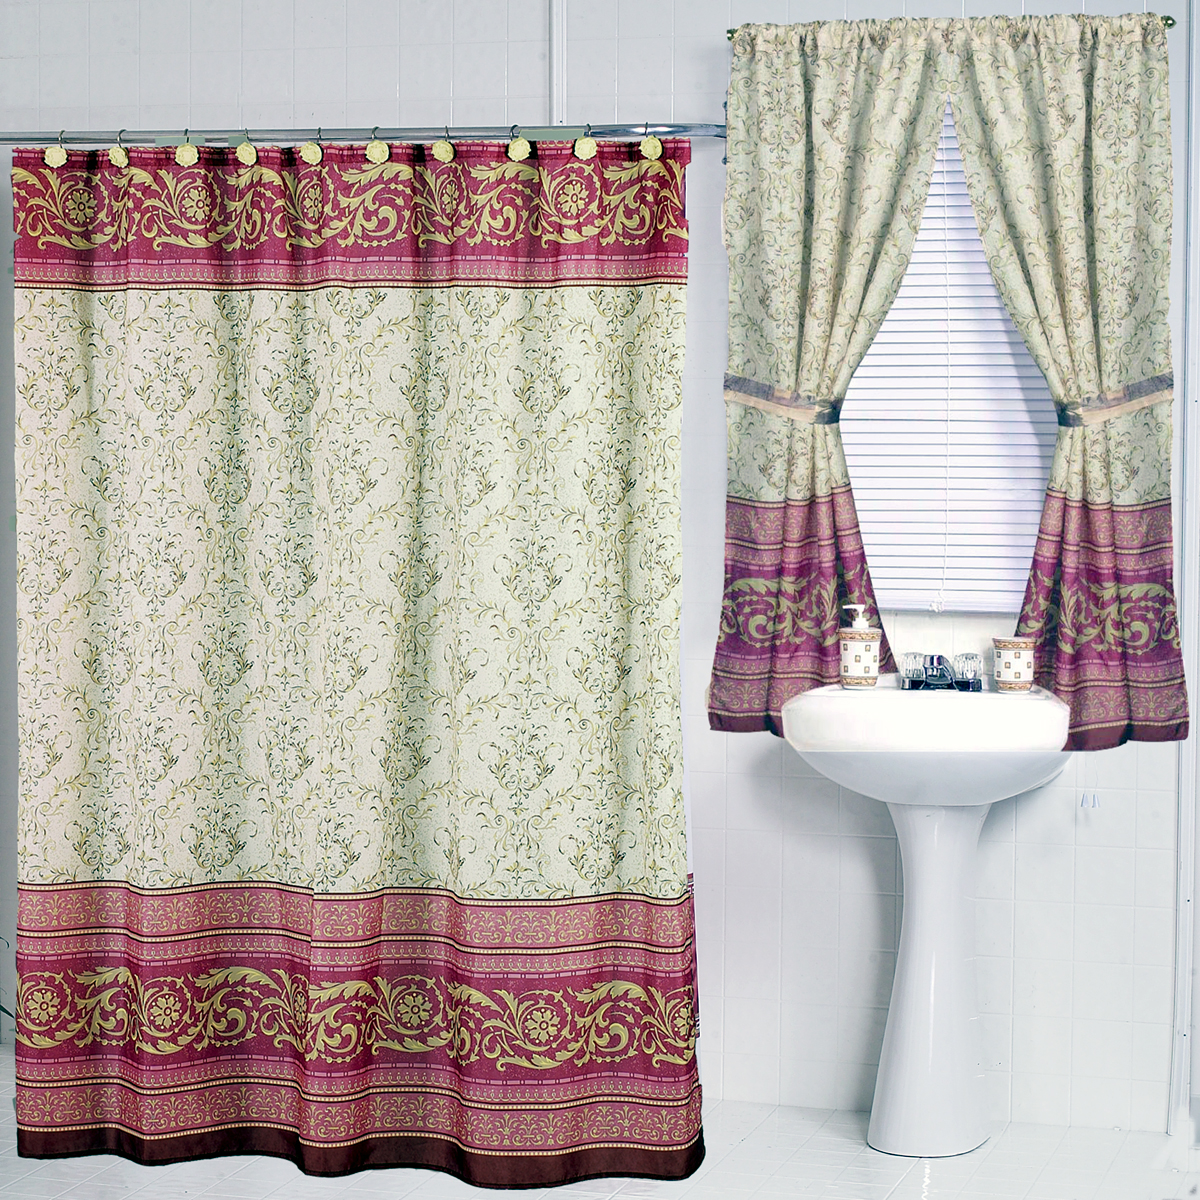 Kitchen And Bathroom Window Curtains